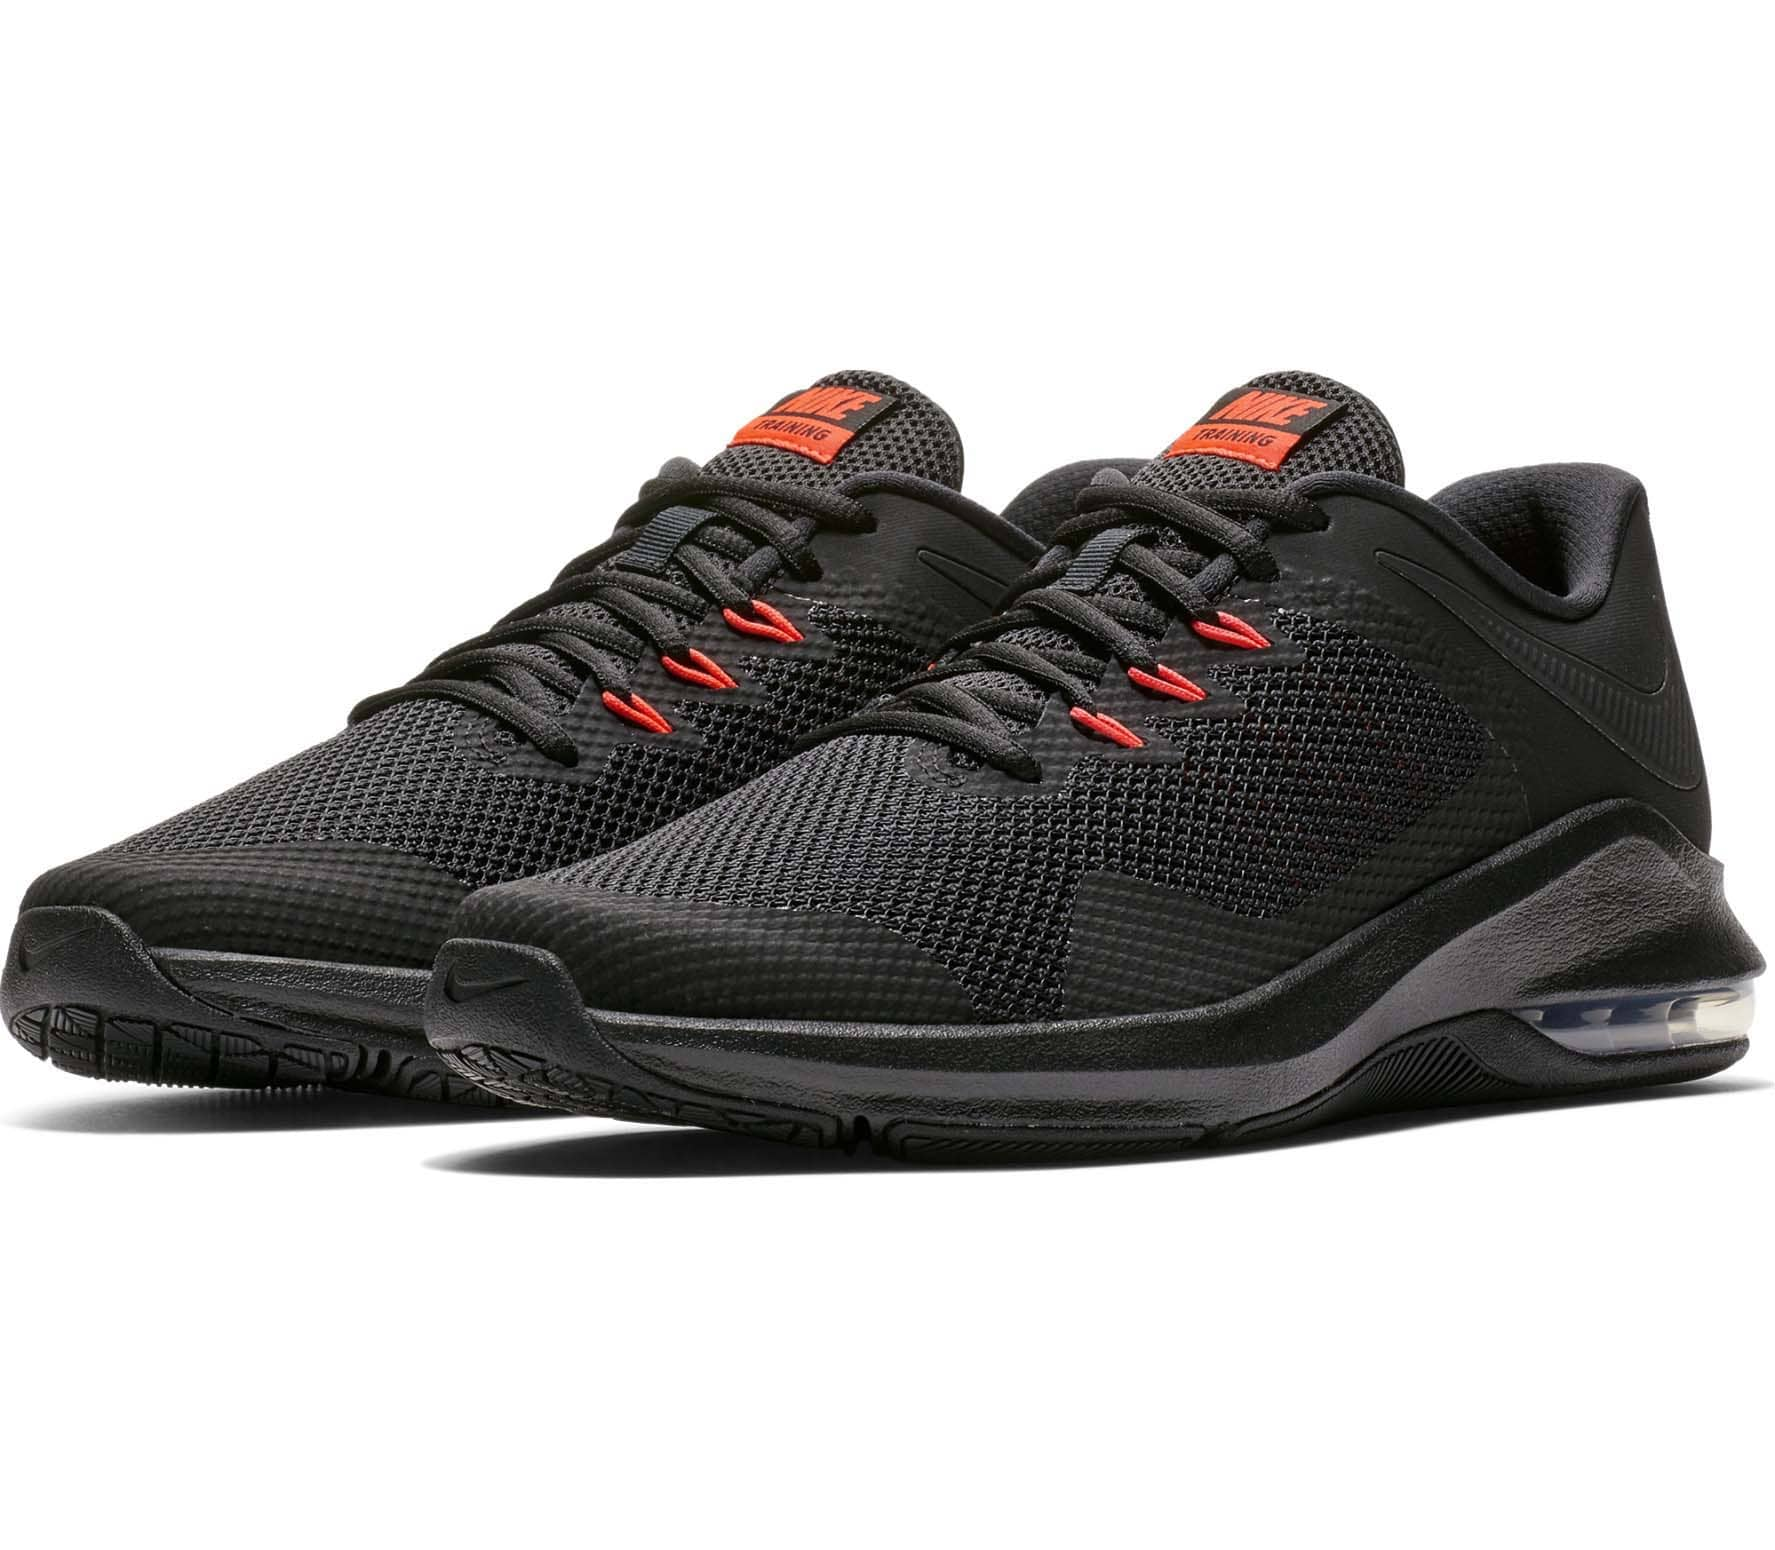 72924630bc4e Nike - Air Max Alpha Trainer men s training shoes (black orange ...